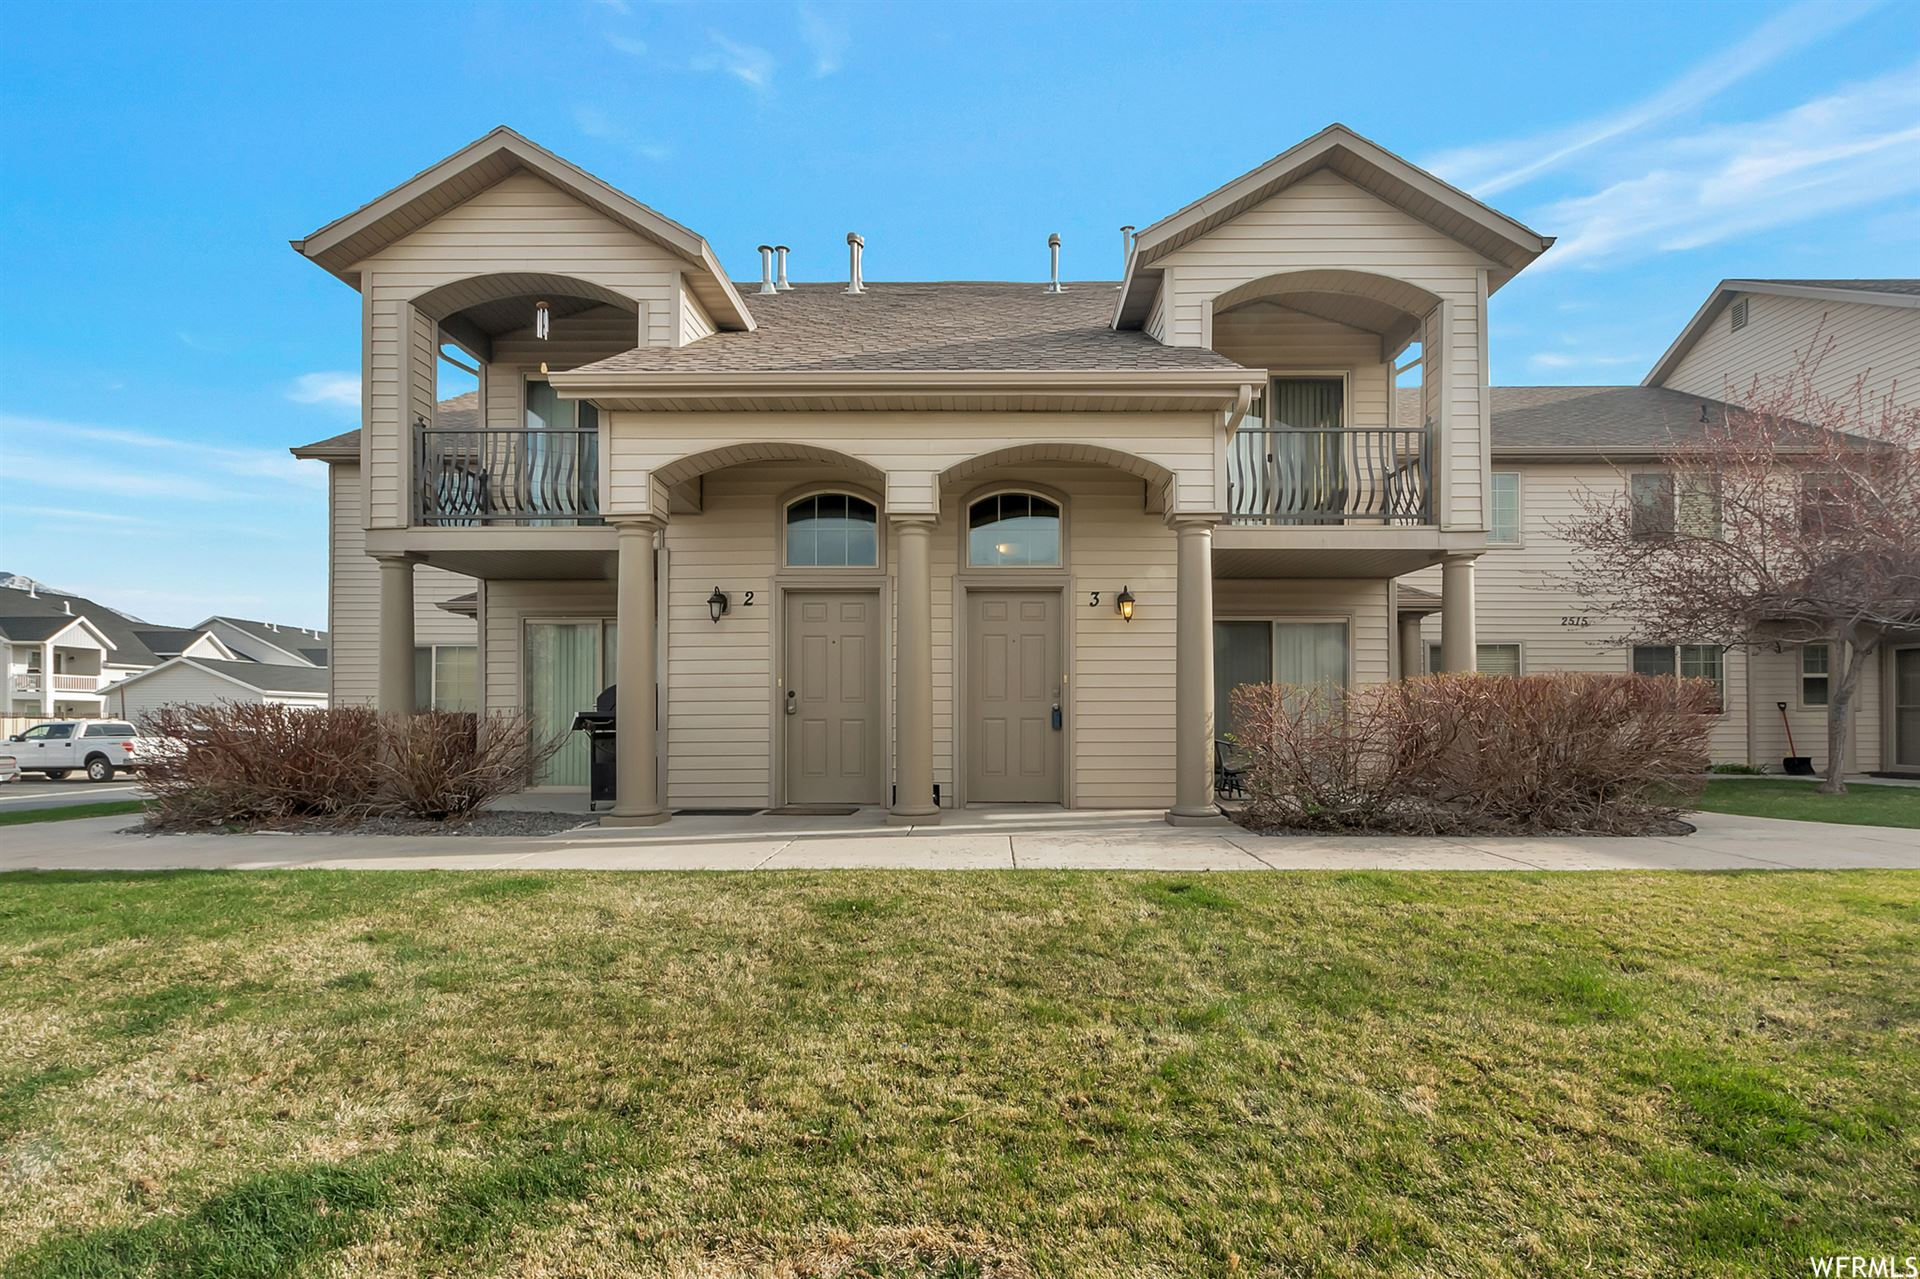 Photo of 2515 W 450 S #3, Springville, UT 84663 (MLS # 1734333)